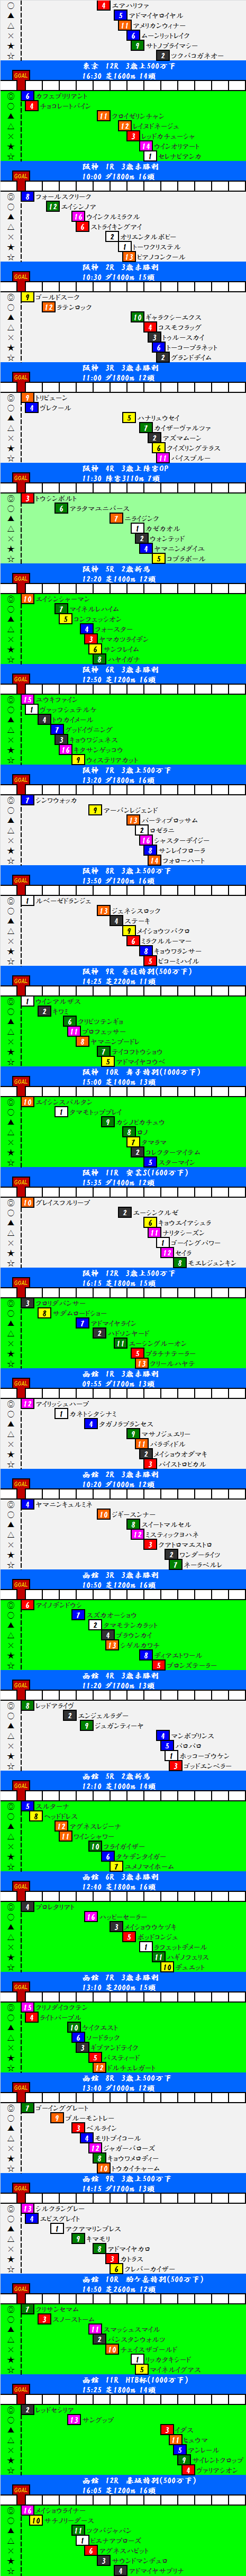 201406142.png